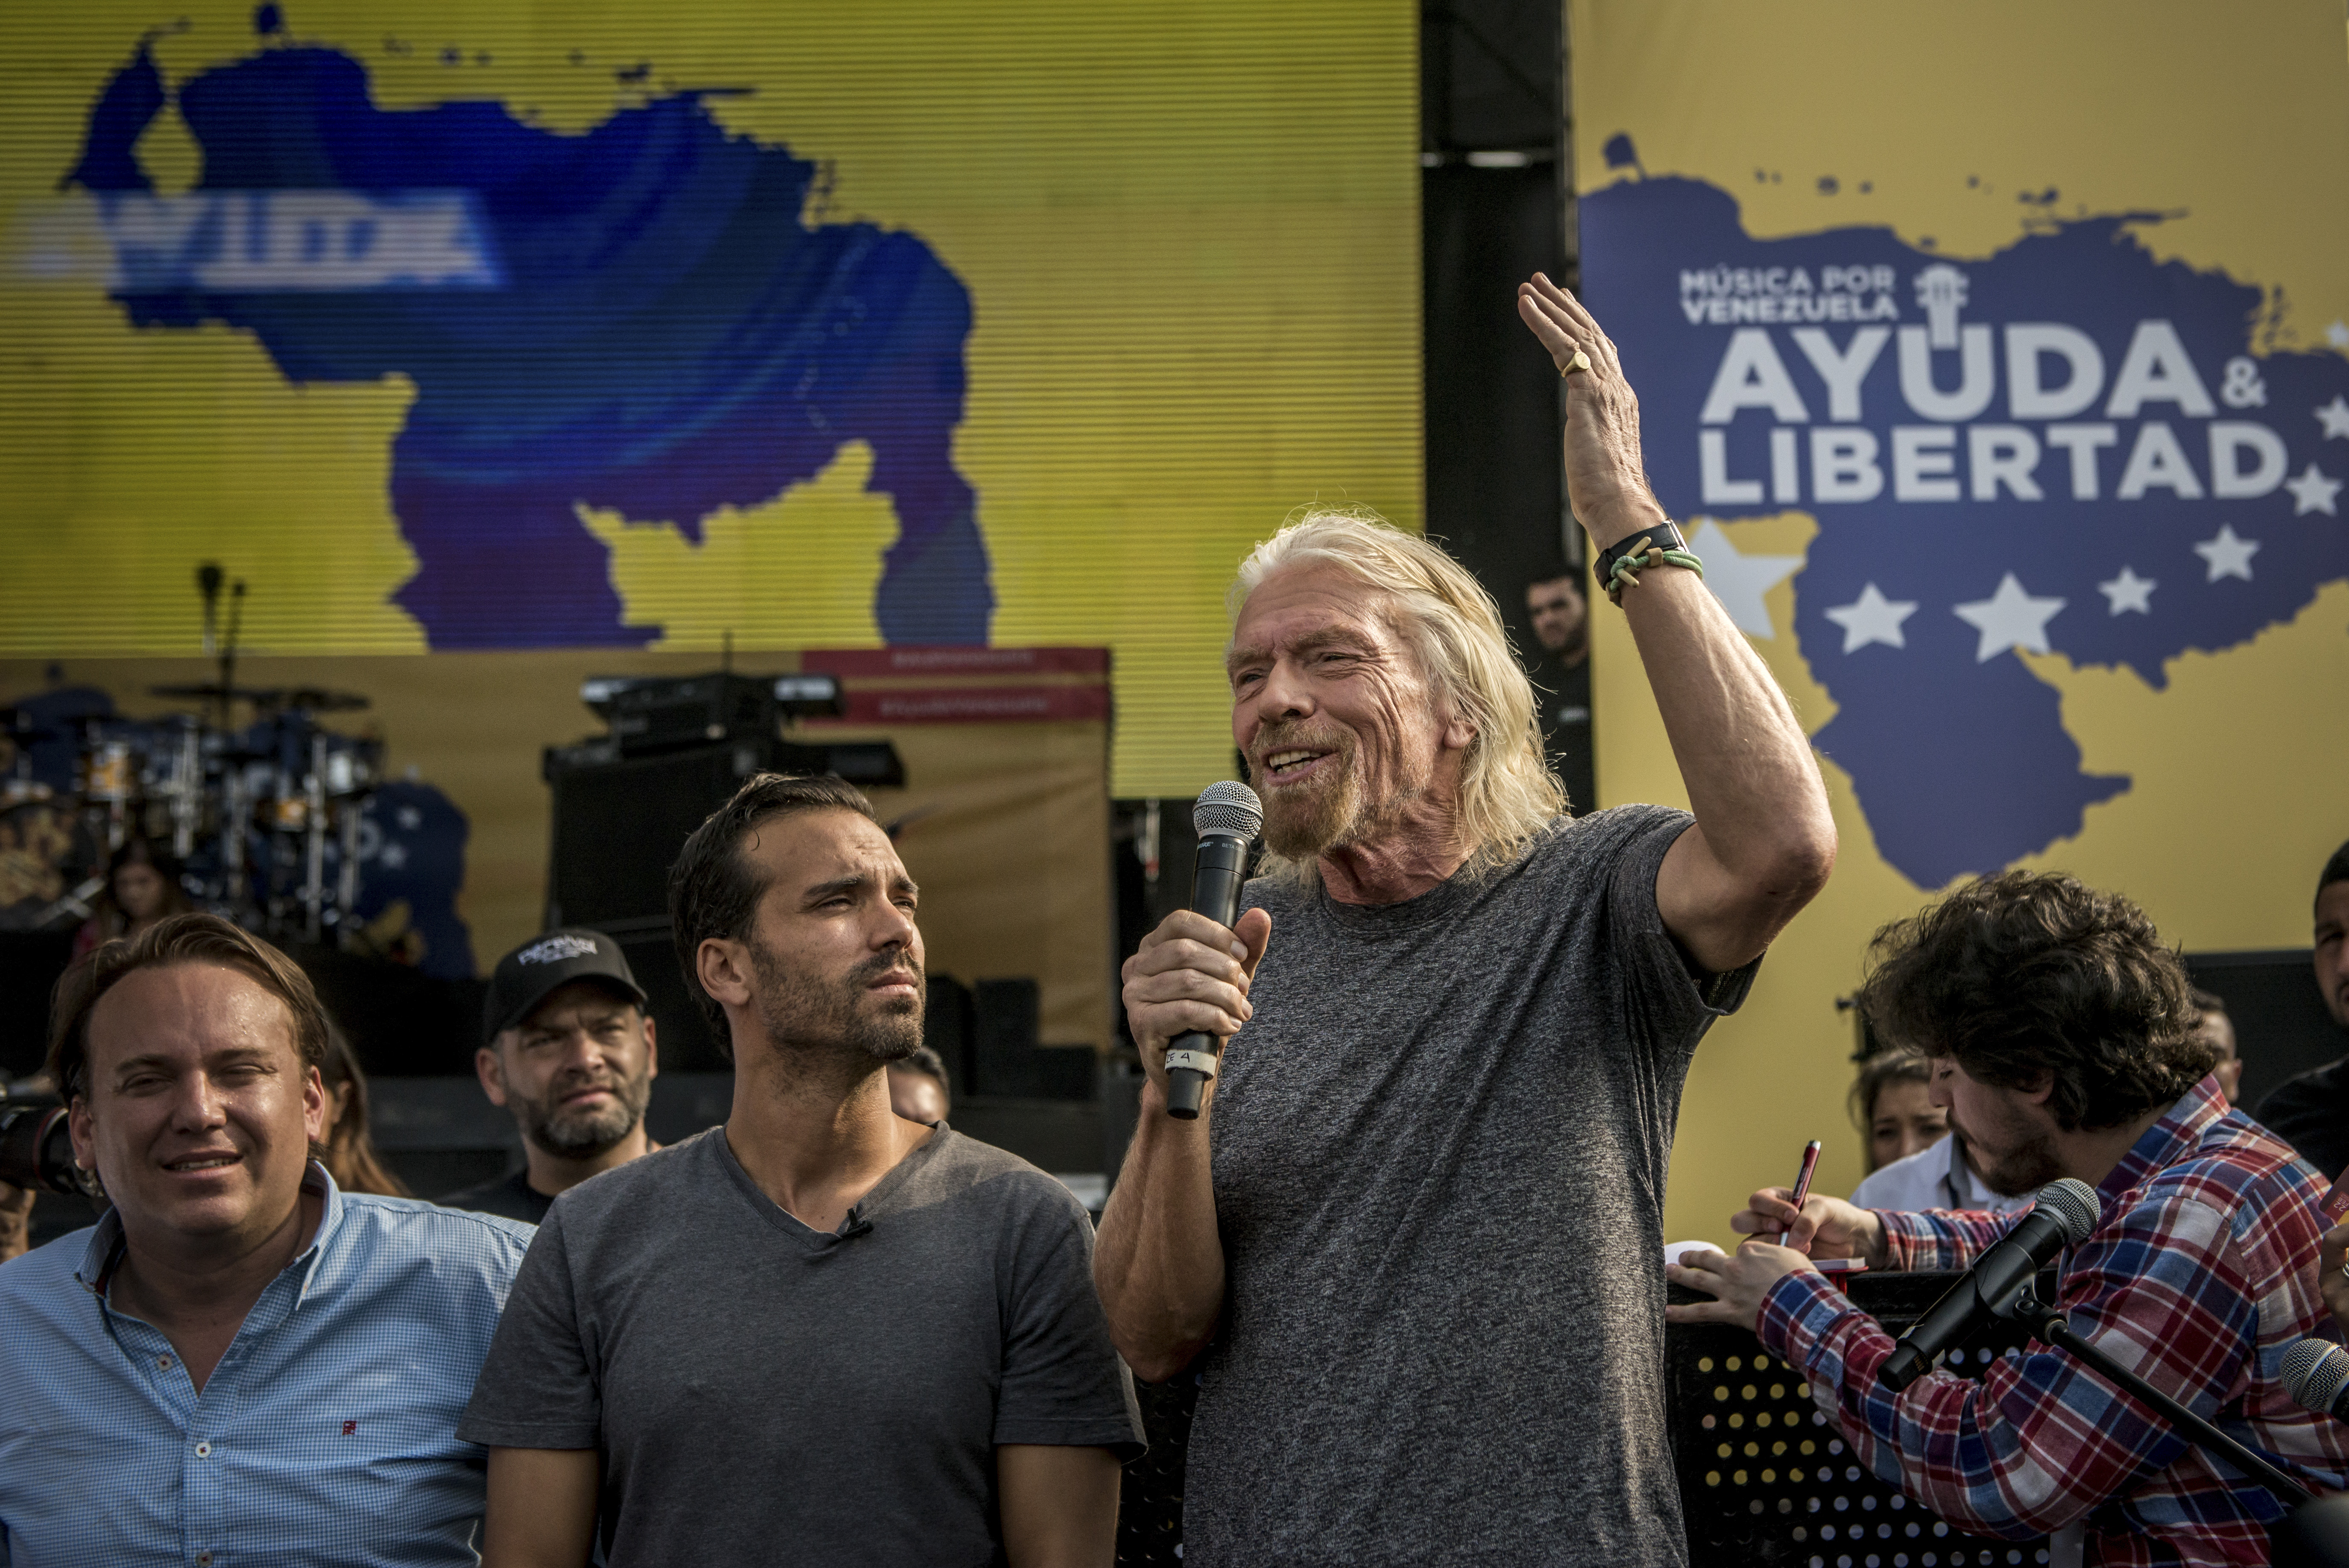 British billionaire Richard Branson (right) speaks to reporters at the Venezuela Aid Live benefit concert on Friday.